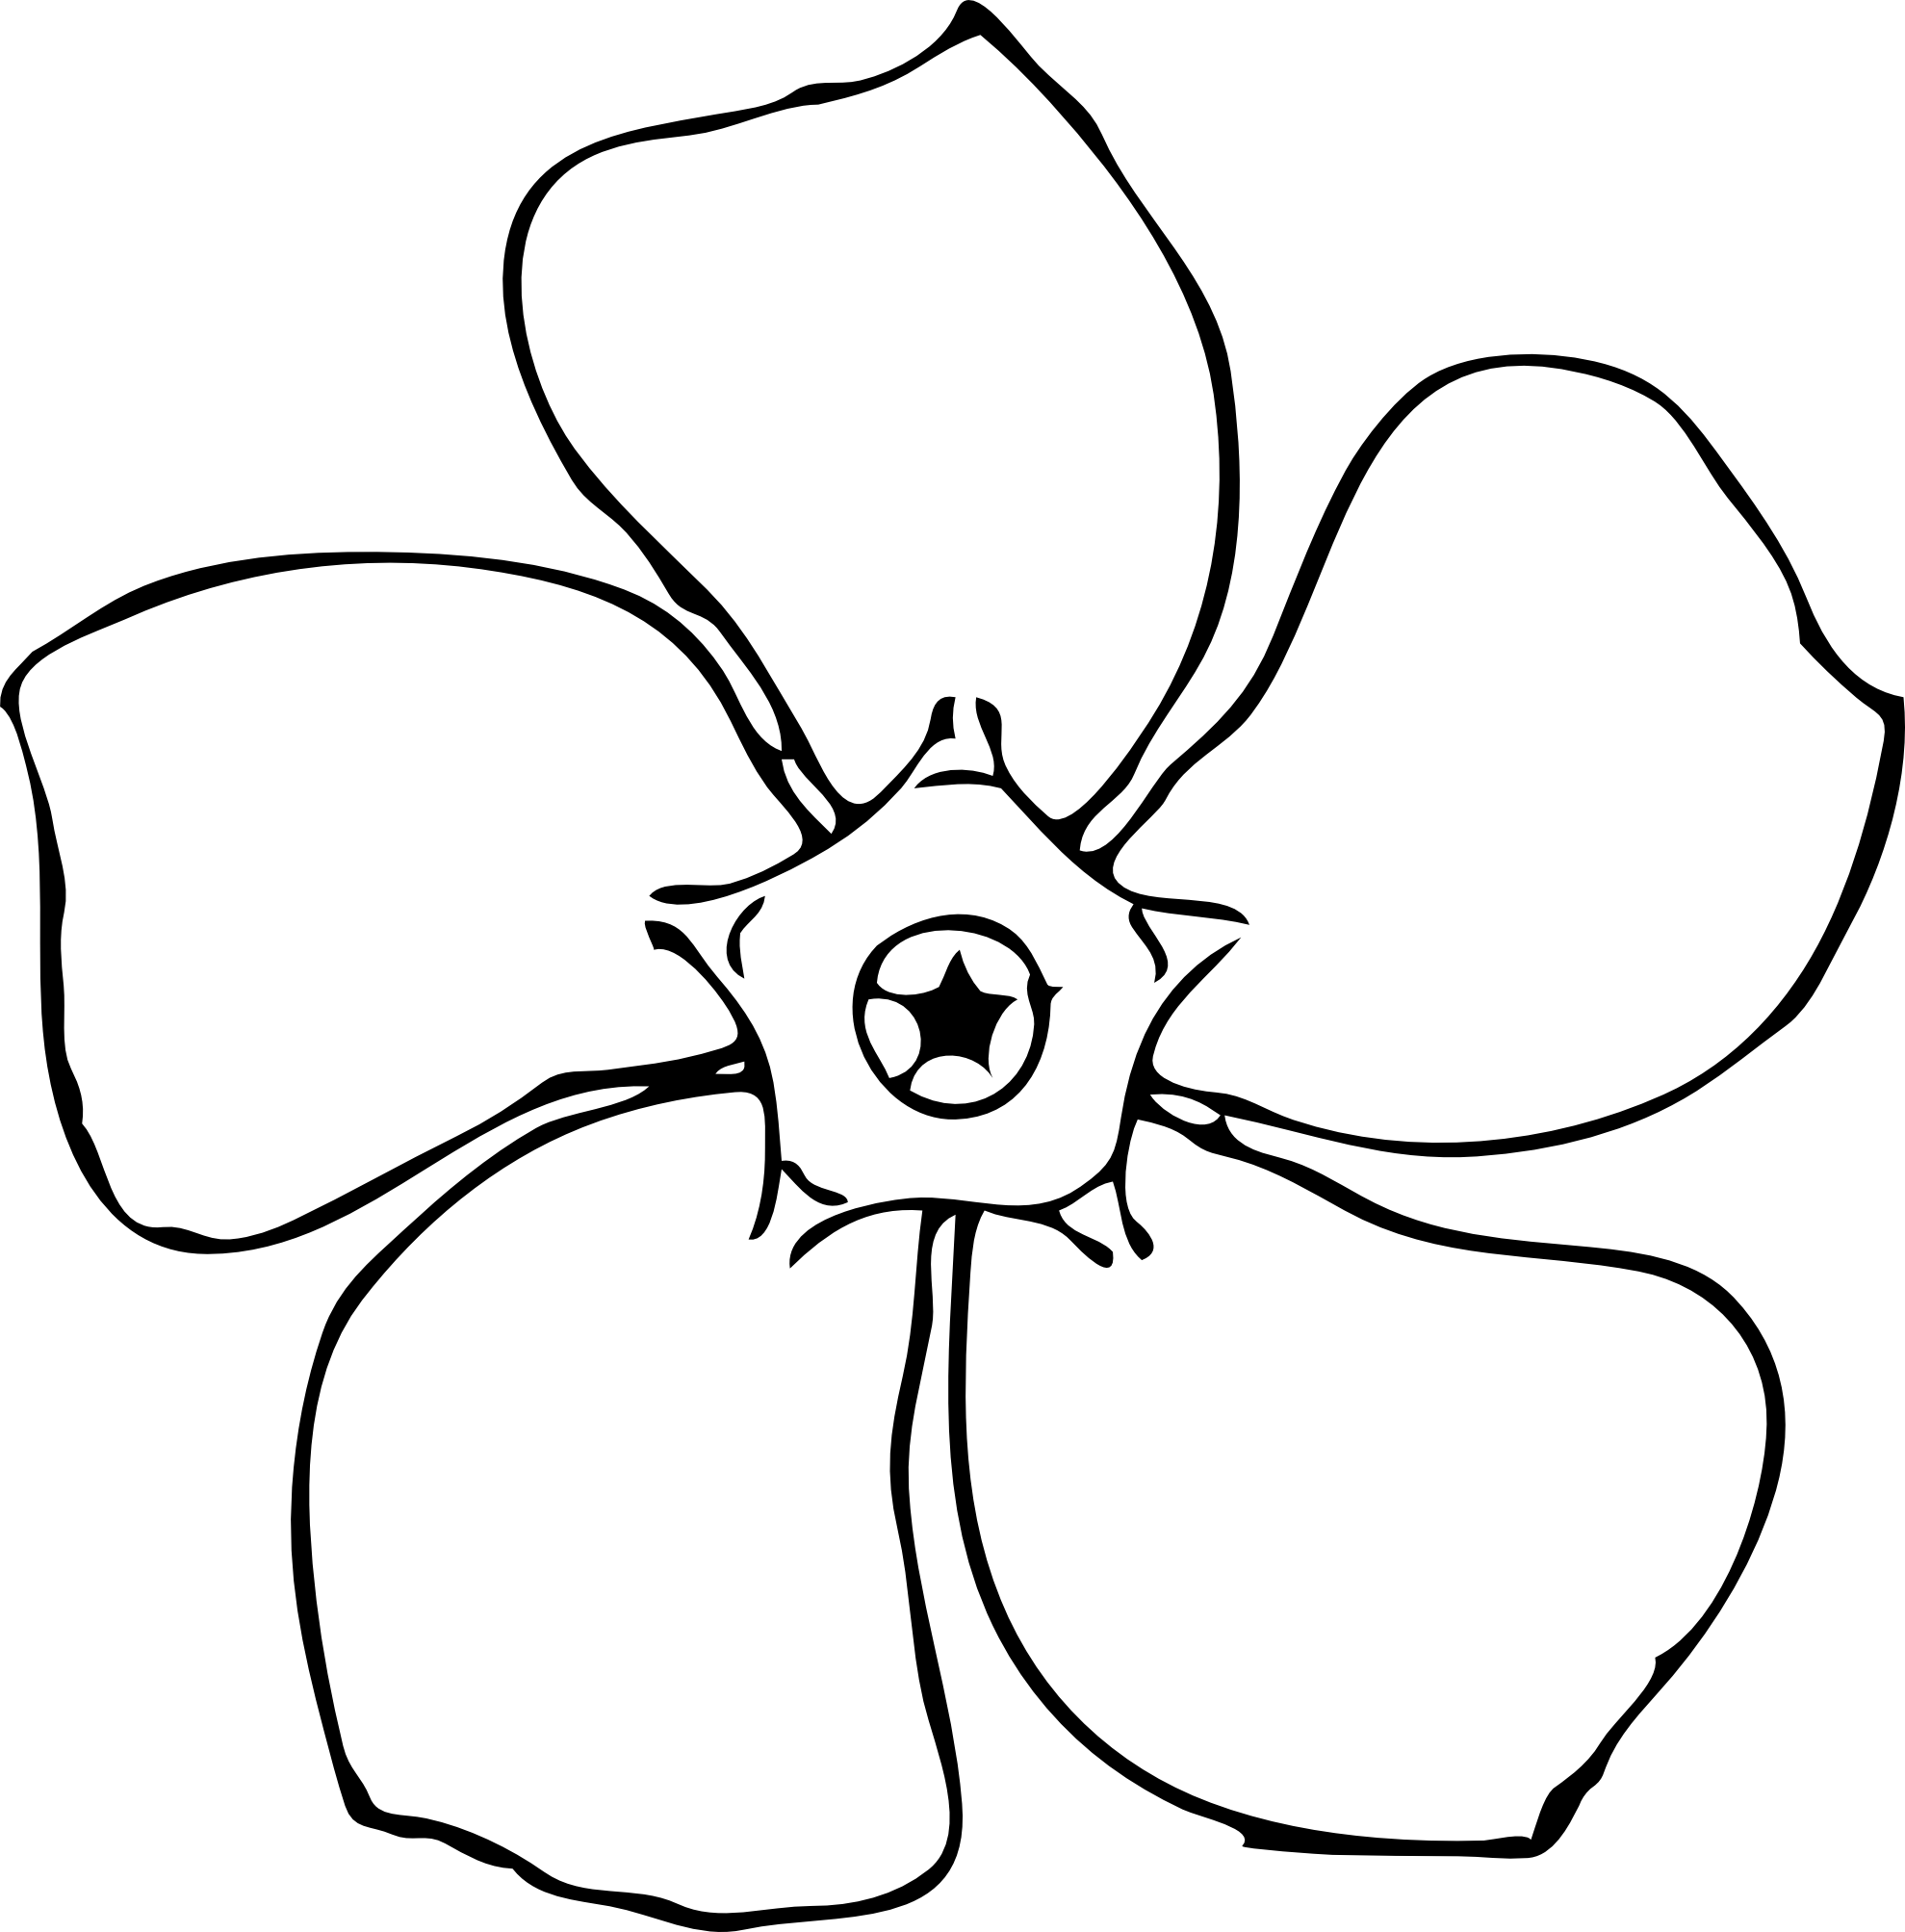 Fake drawing flower. Images for white magnolia